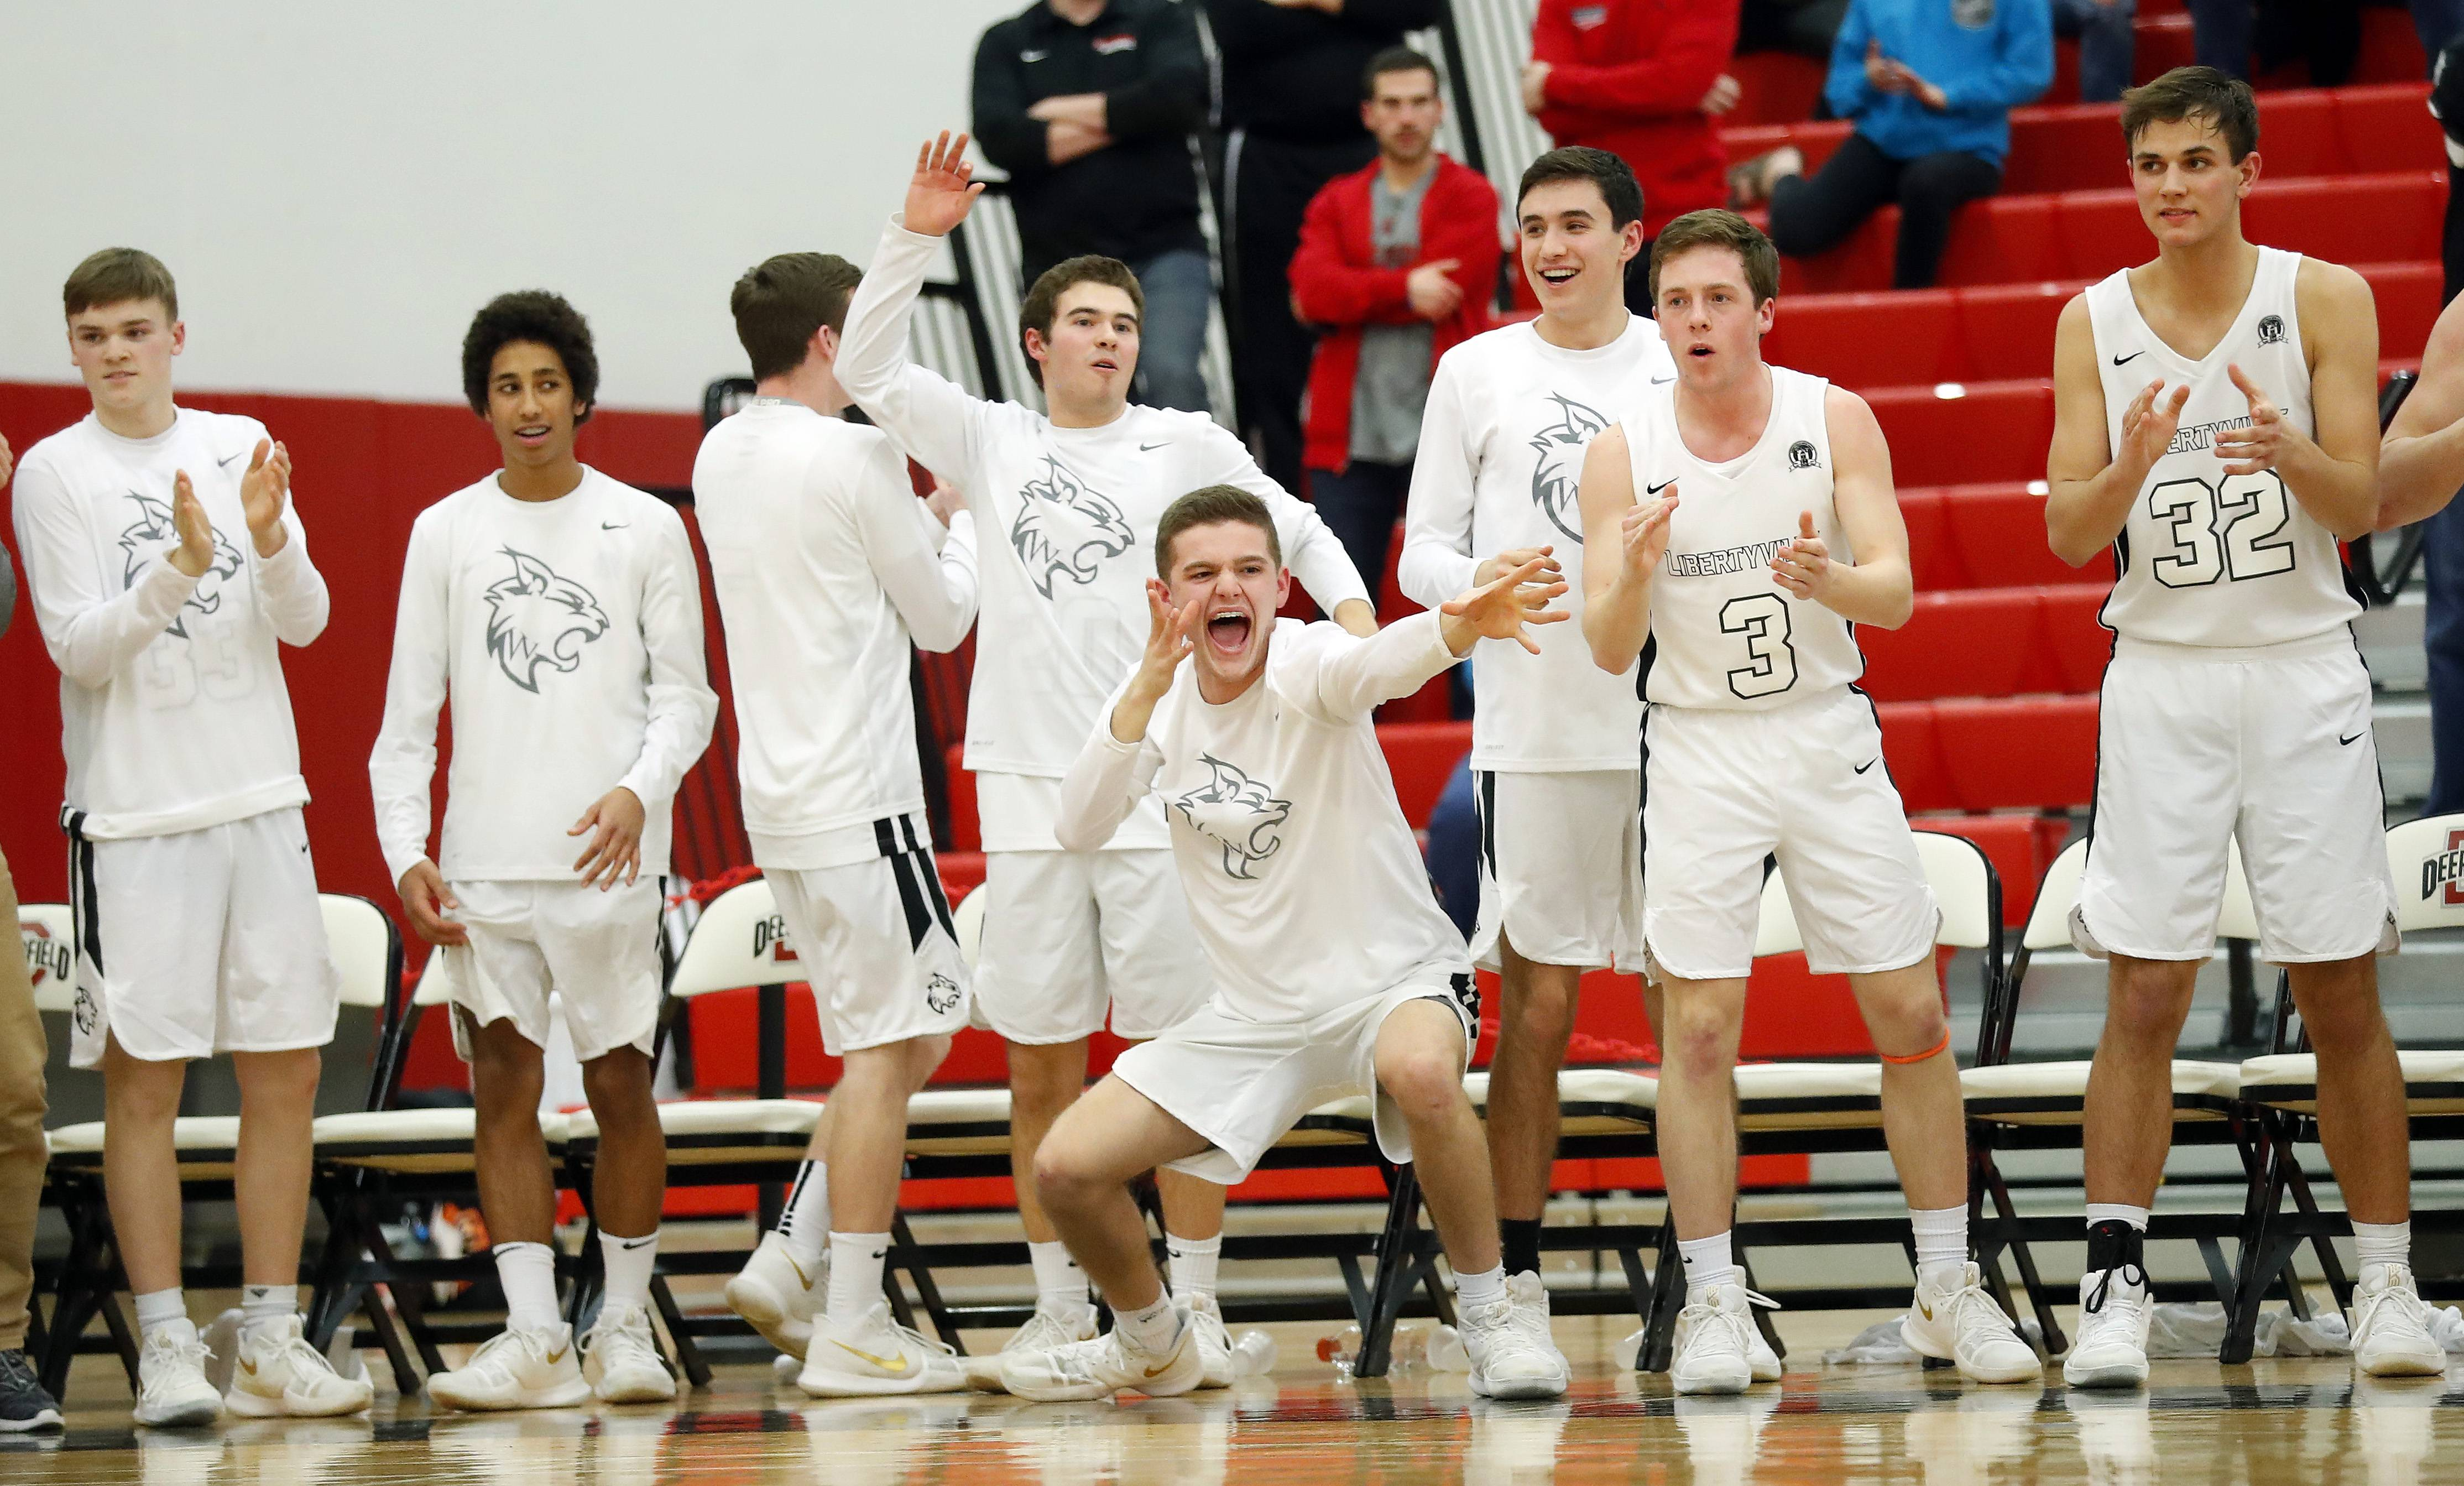 The Libertyville bench celebrates during the Wildcats' 59-56 win over Conant in Class 4A regional final play Friday at Deerfield.